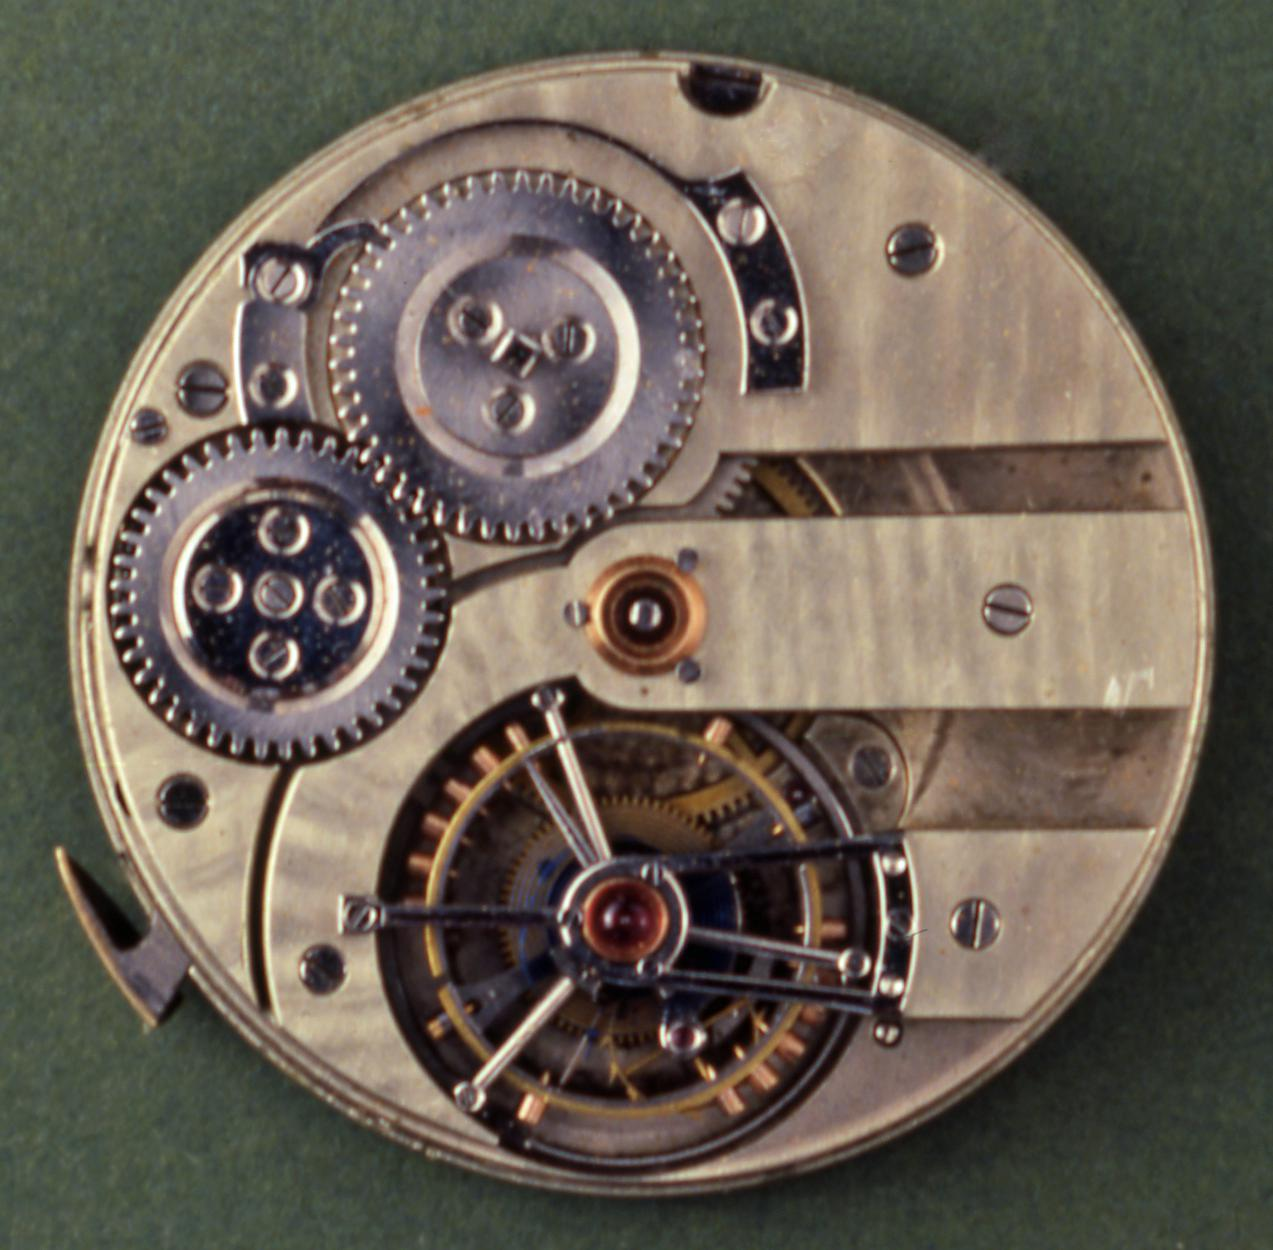 Tourbillon Movement by Albert Pellaton